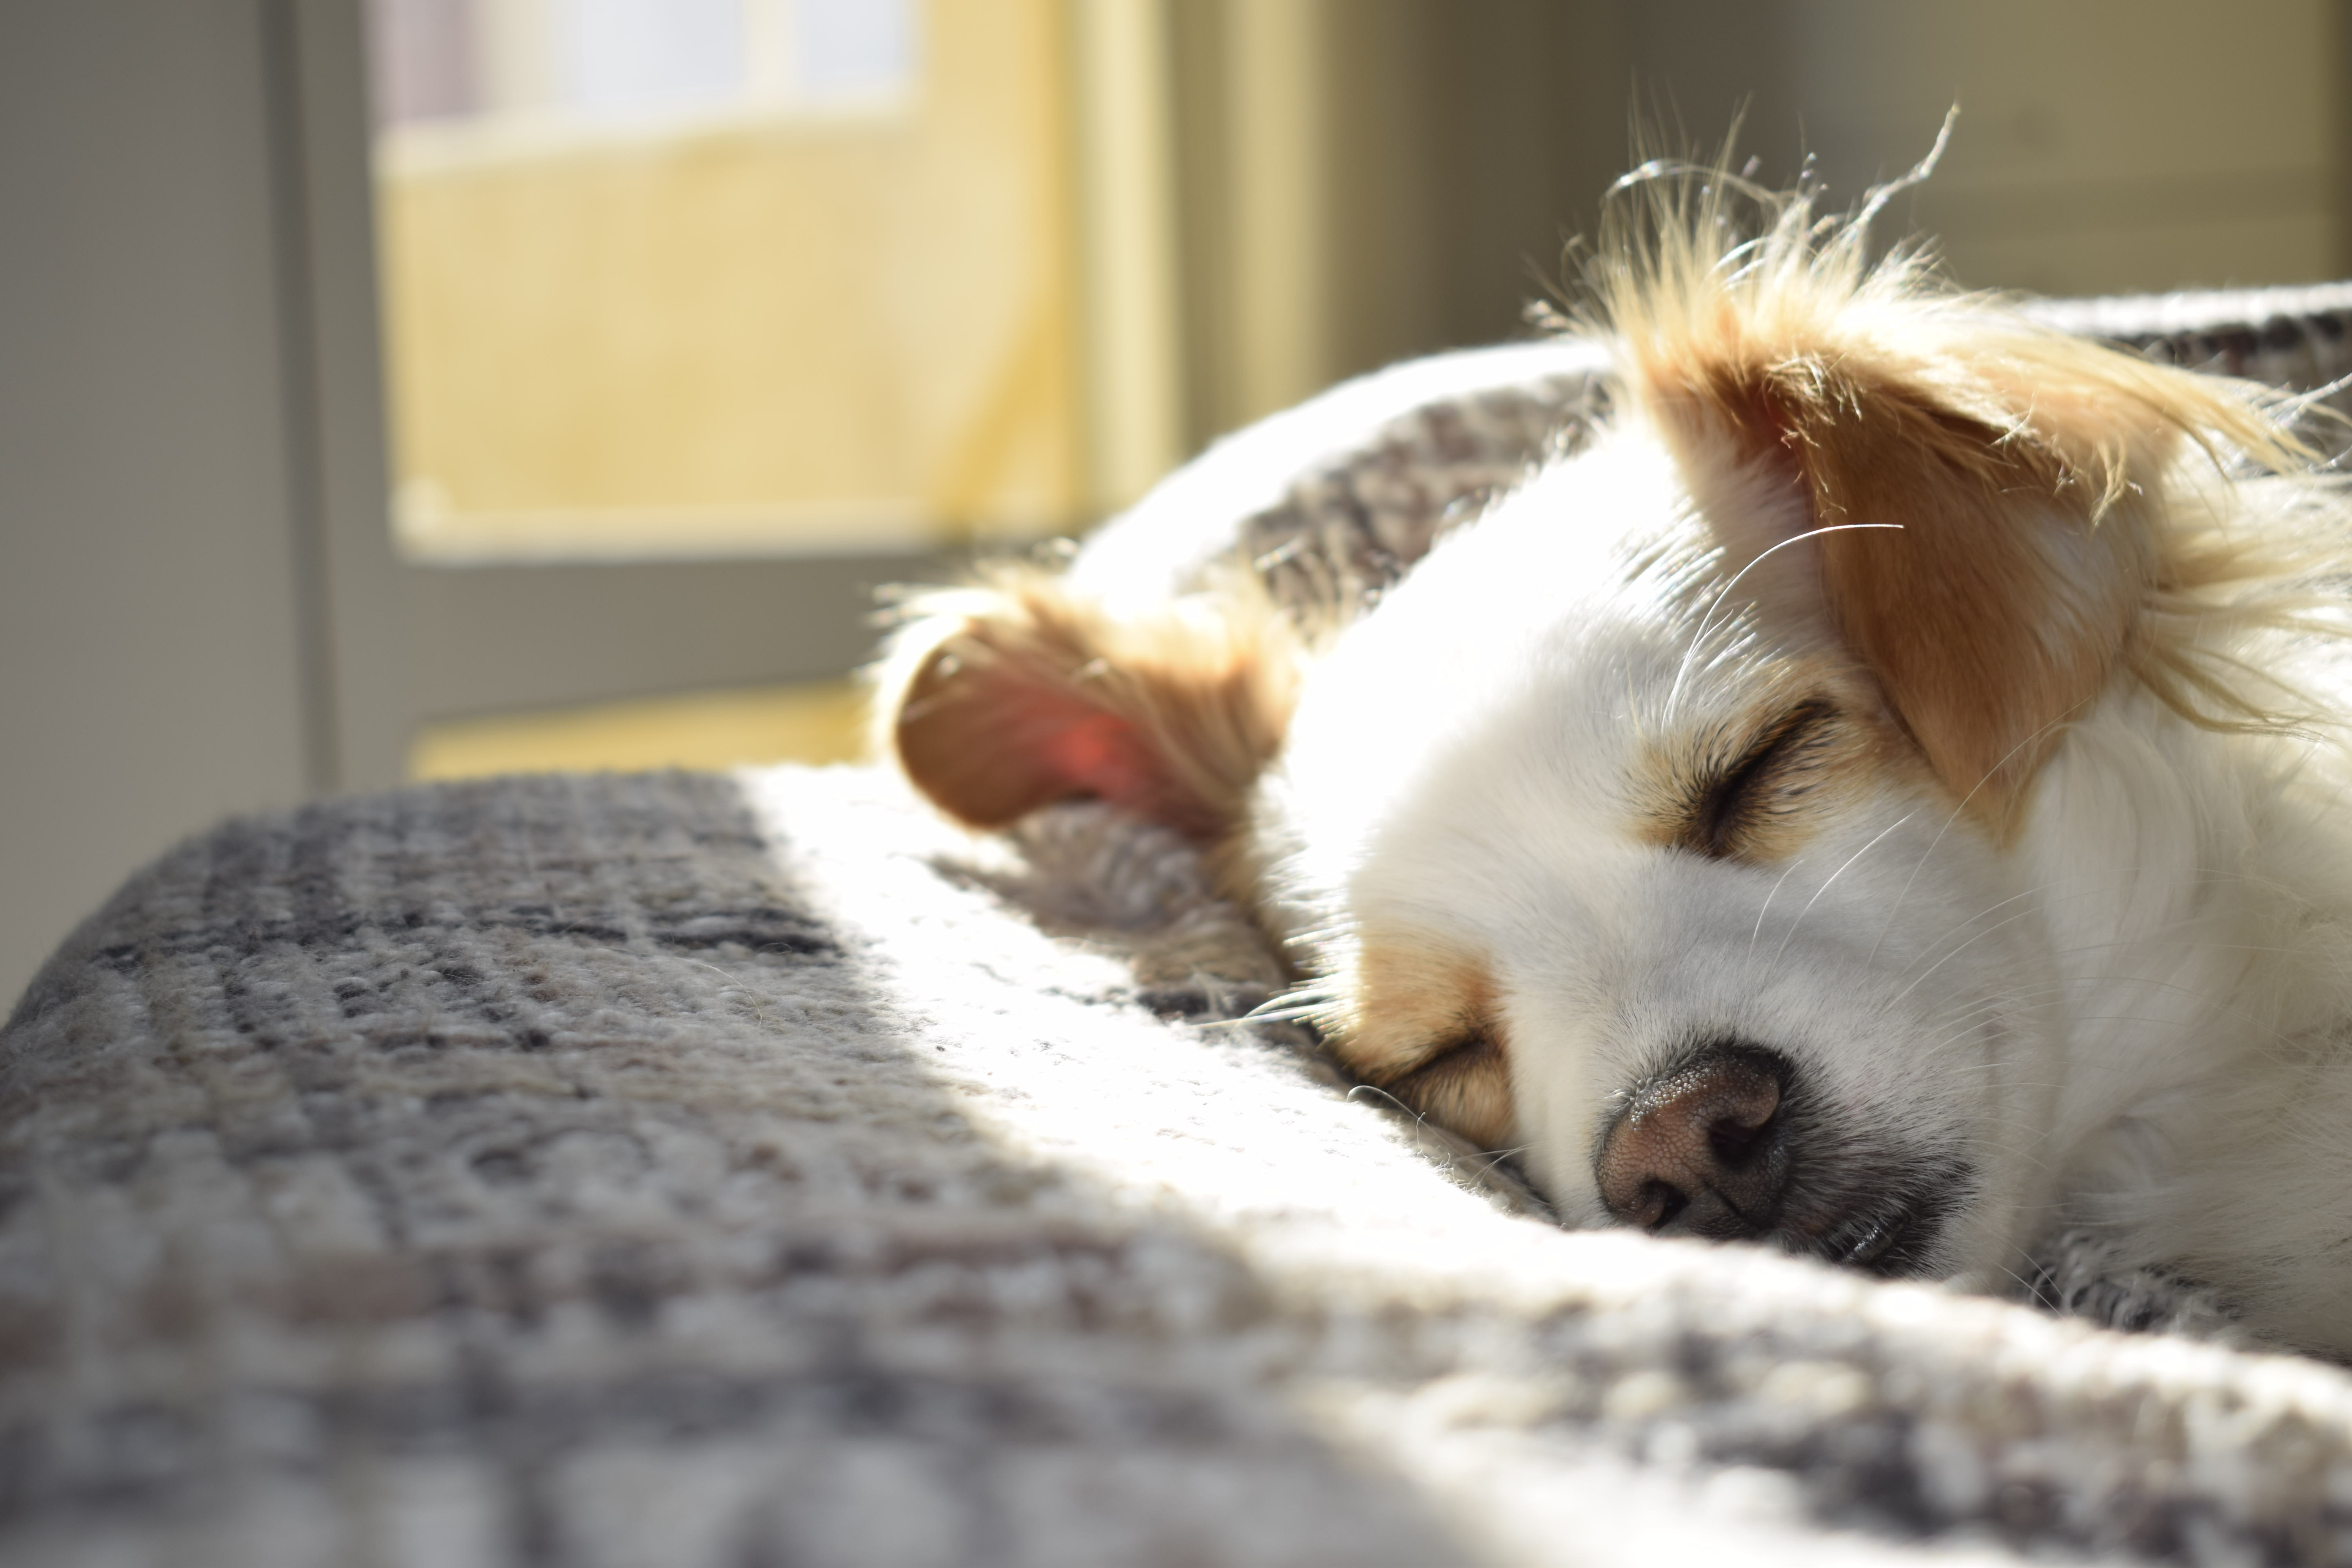 Little dog sleeping in bed